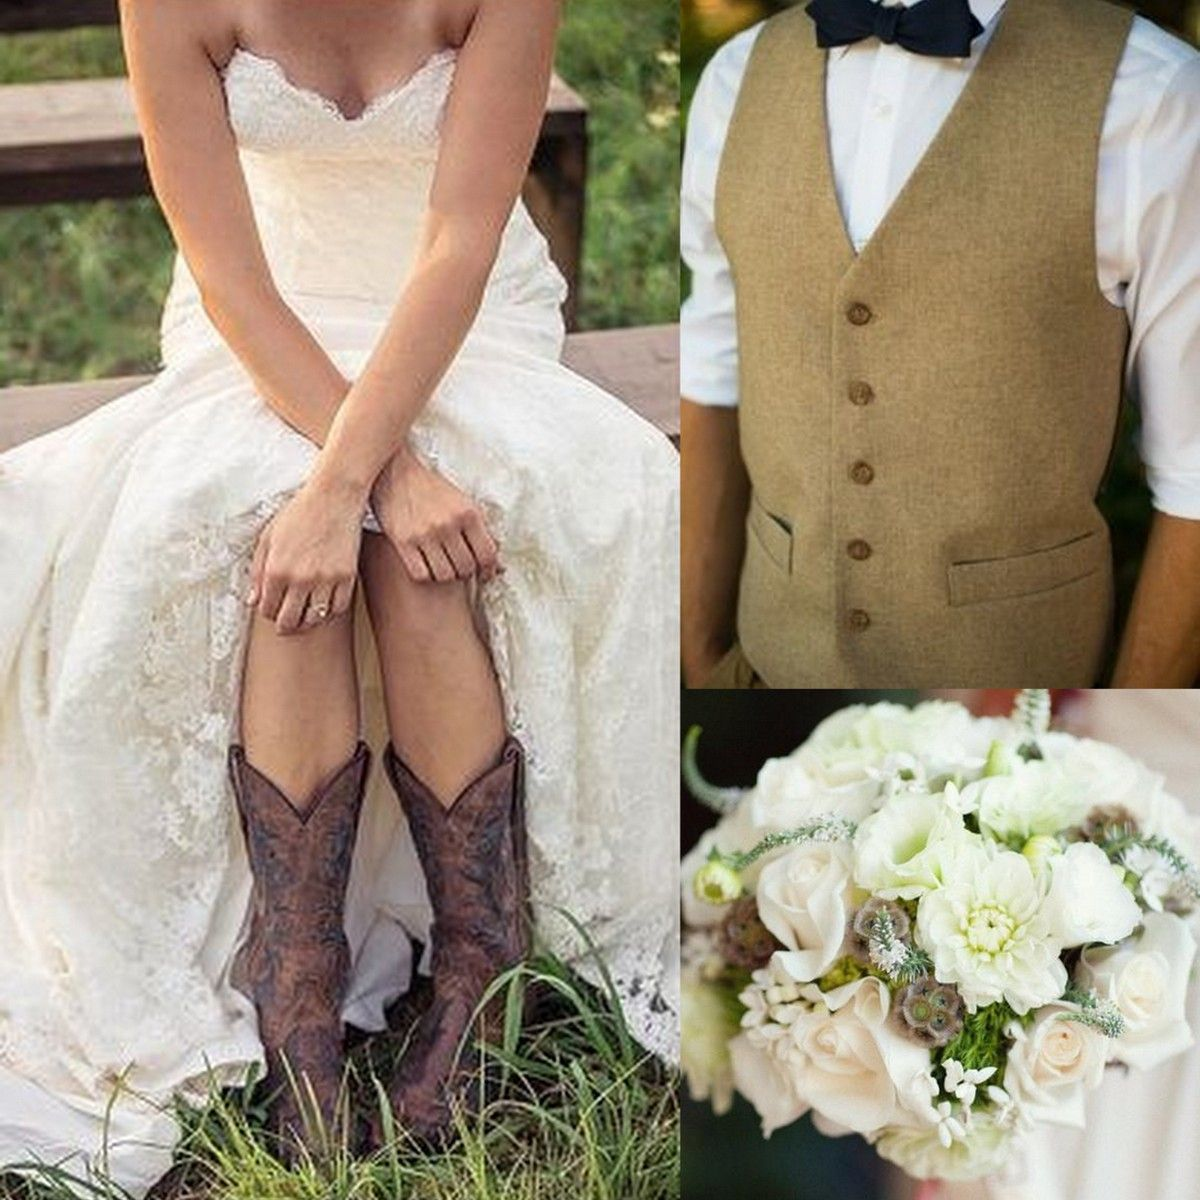 Brides Grooms Paired With Bouquets ShoesWedding Style Lisa Sammons Events